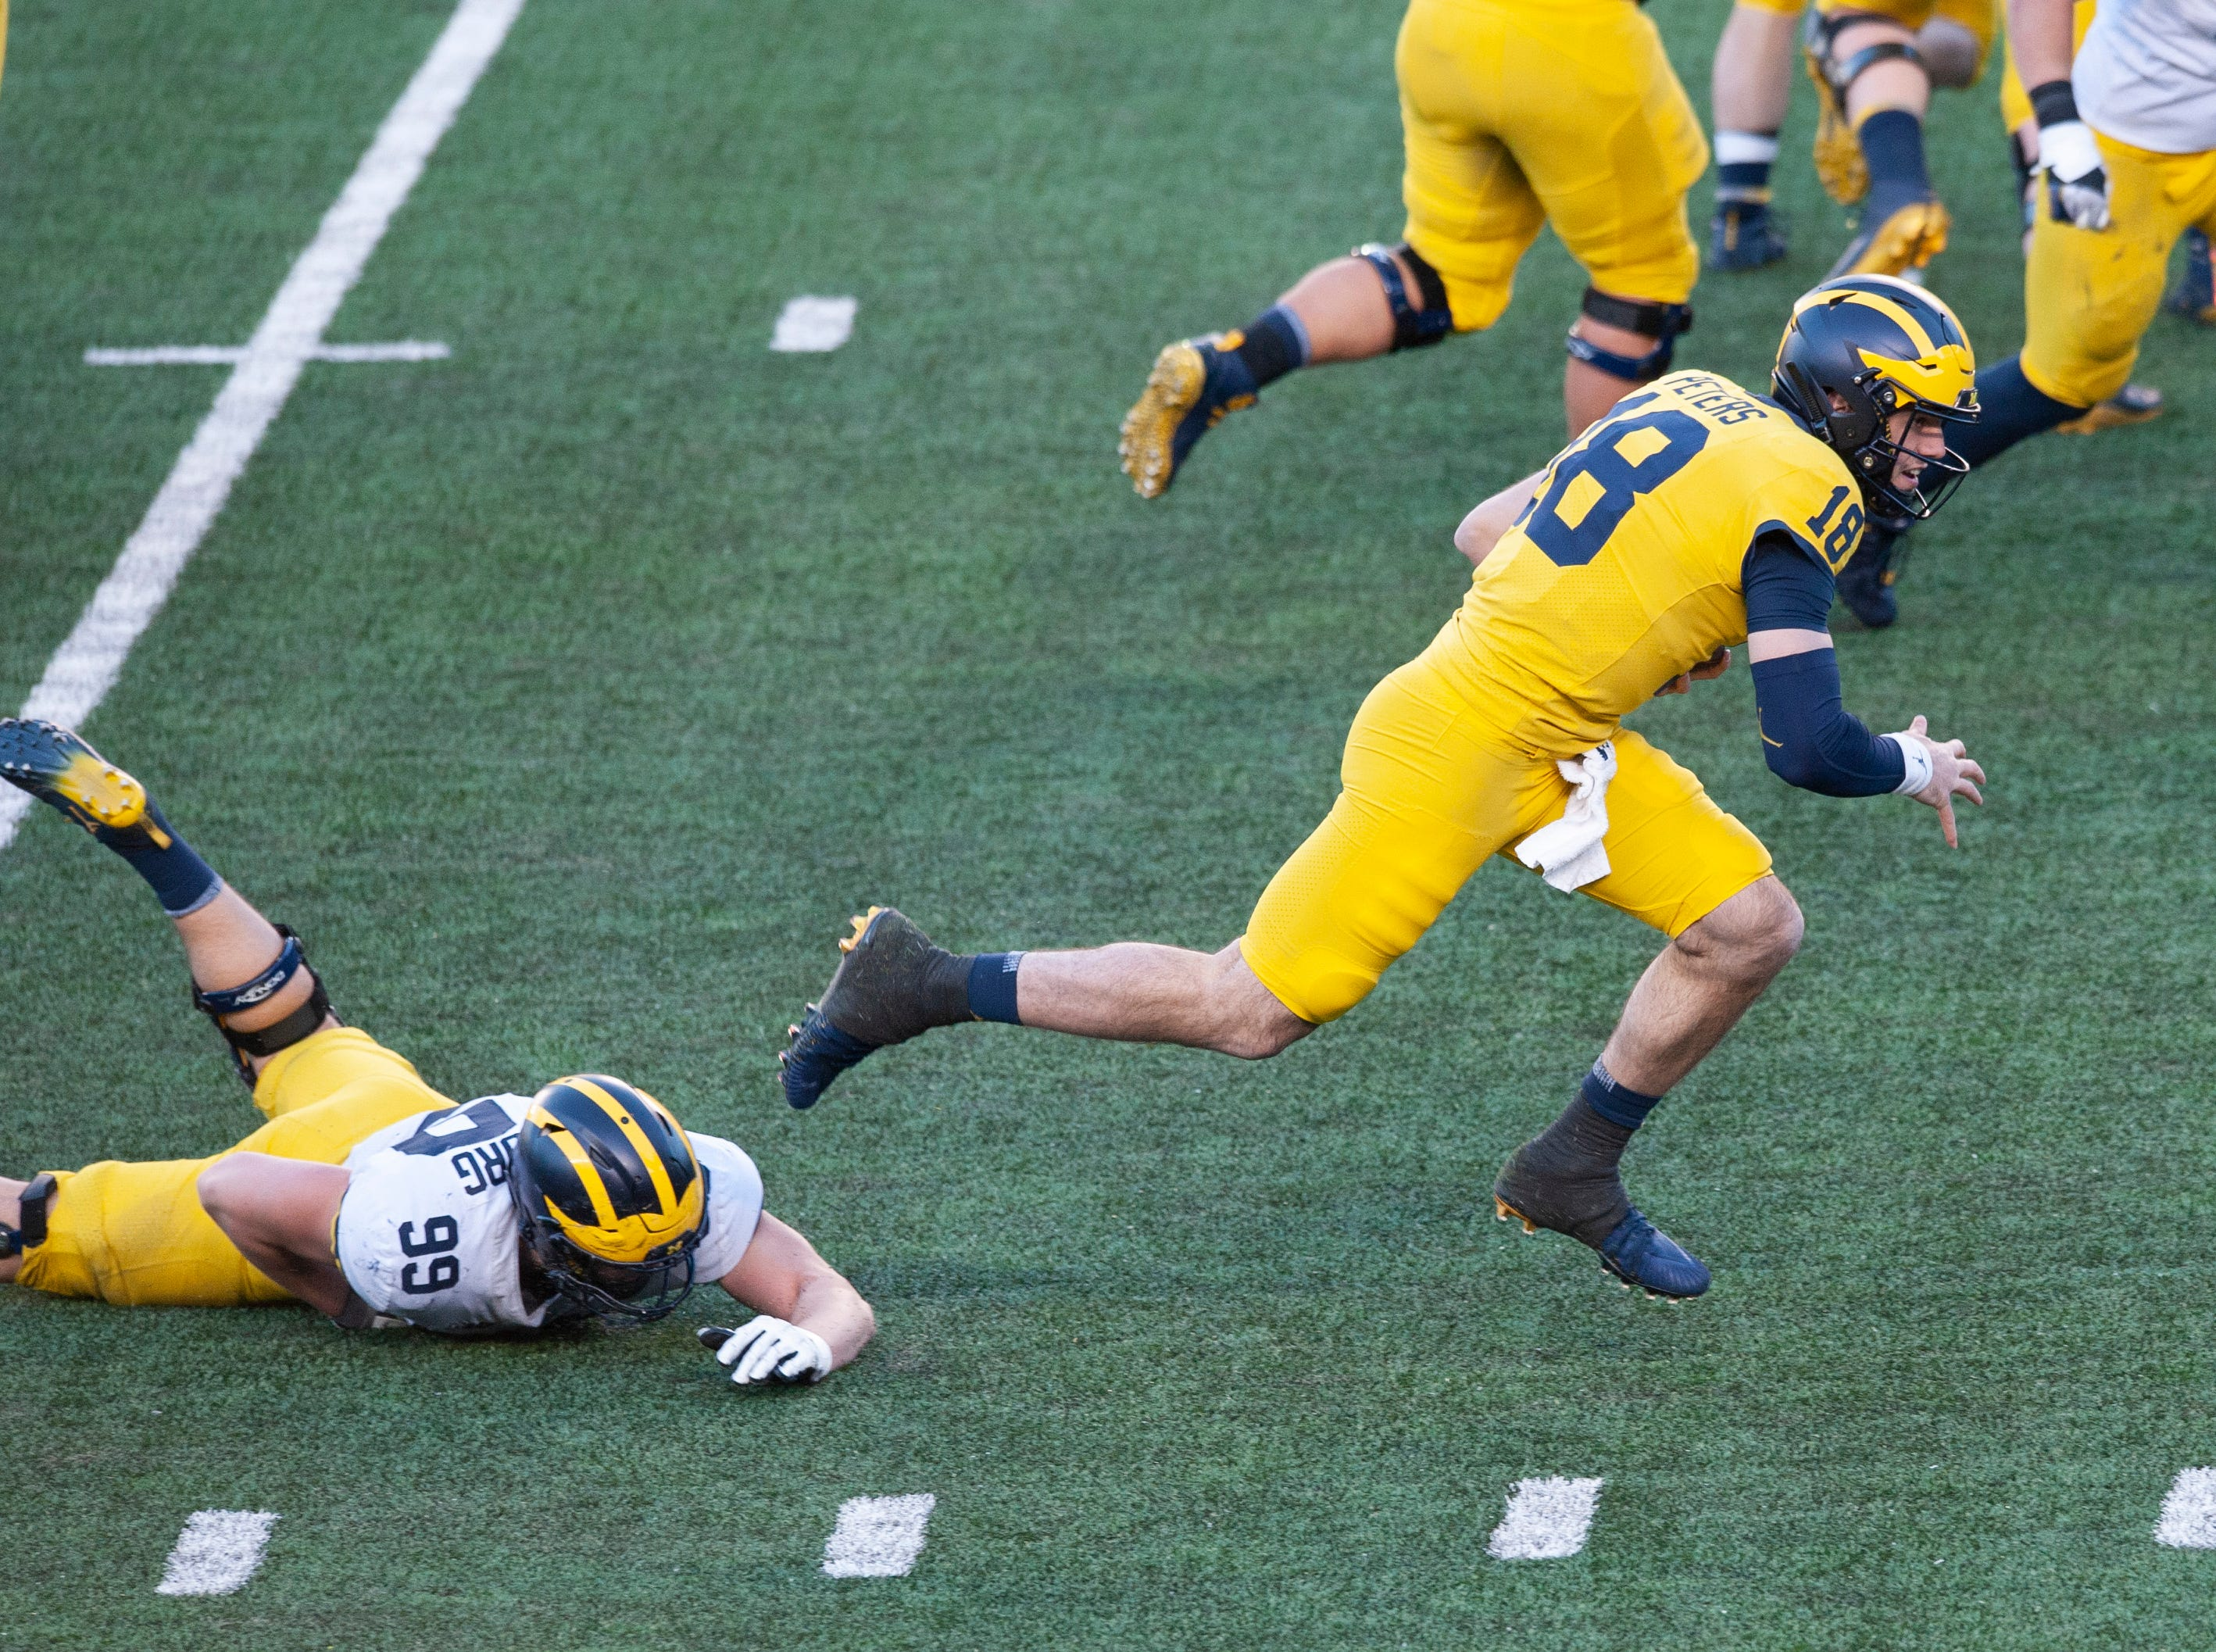 Michigan QB Brandon Peters runs away from sprawling freshman DL Gabe Newburg (99) after recovering his own fumble on the run.